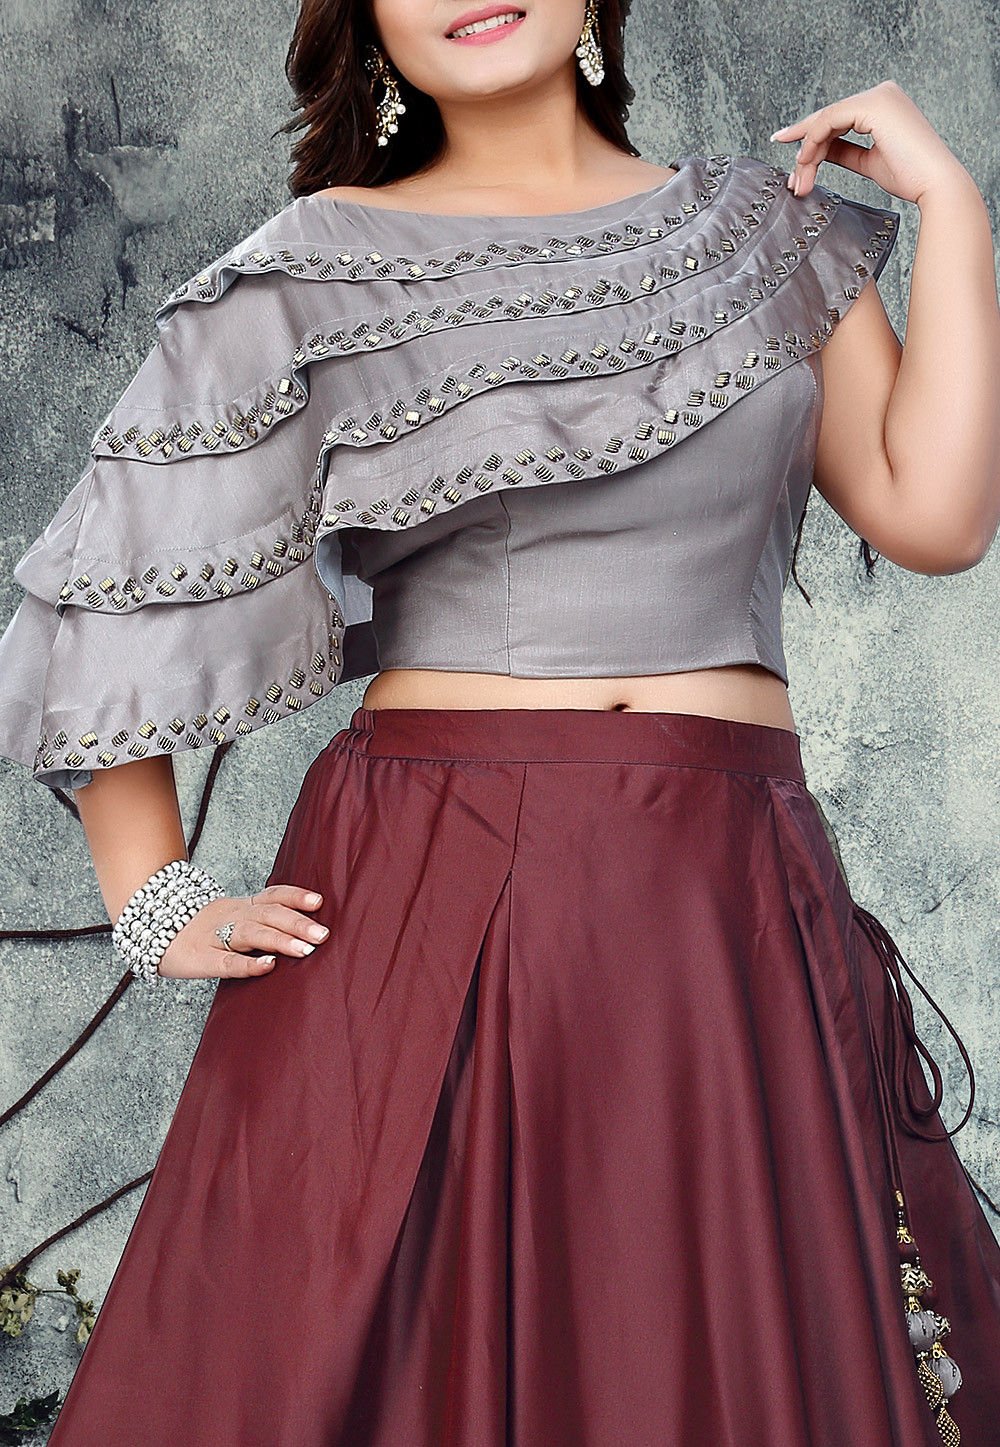 Embroidered Art Silk Crop Top With Skirt In Grey And Maroon Tgv18 Shop designer crop tops, spaghetti tops, strap tops, printed tops, wrap tops, asymmetrical tops, embroidered tops, smocking top & much more. embroidered art silk crop top with skirt in grey and maroon